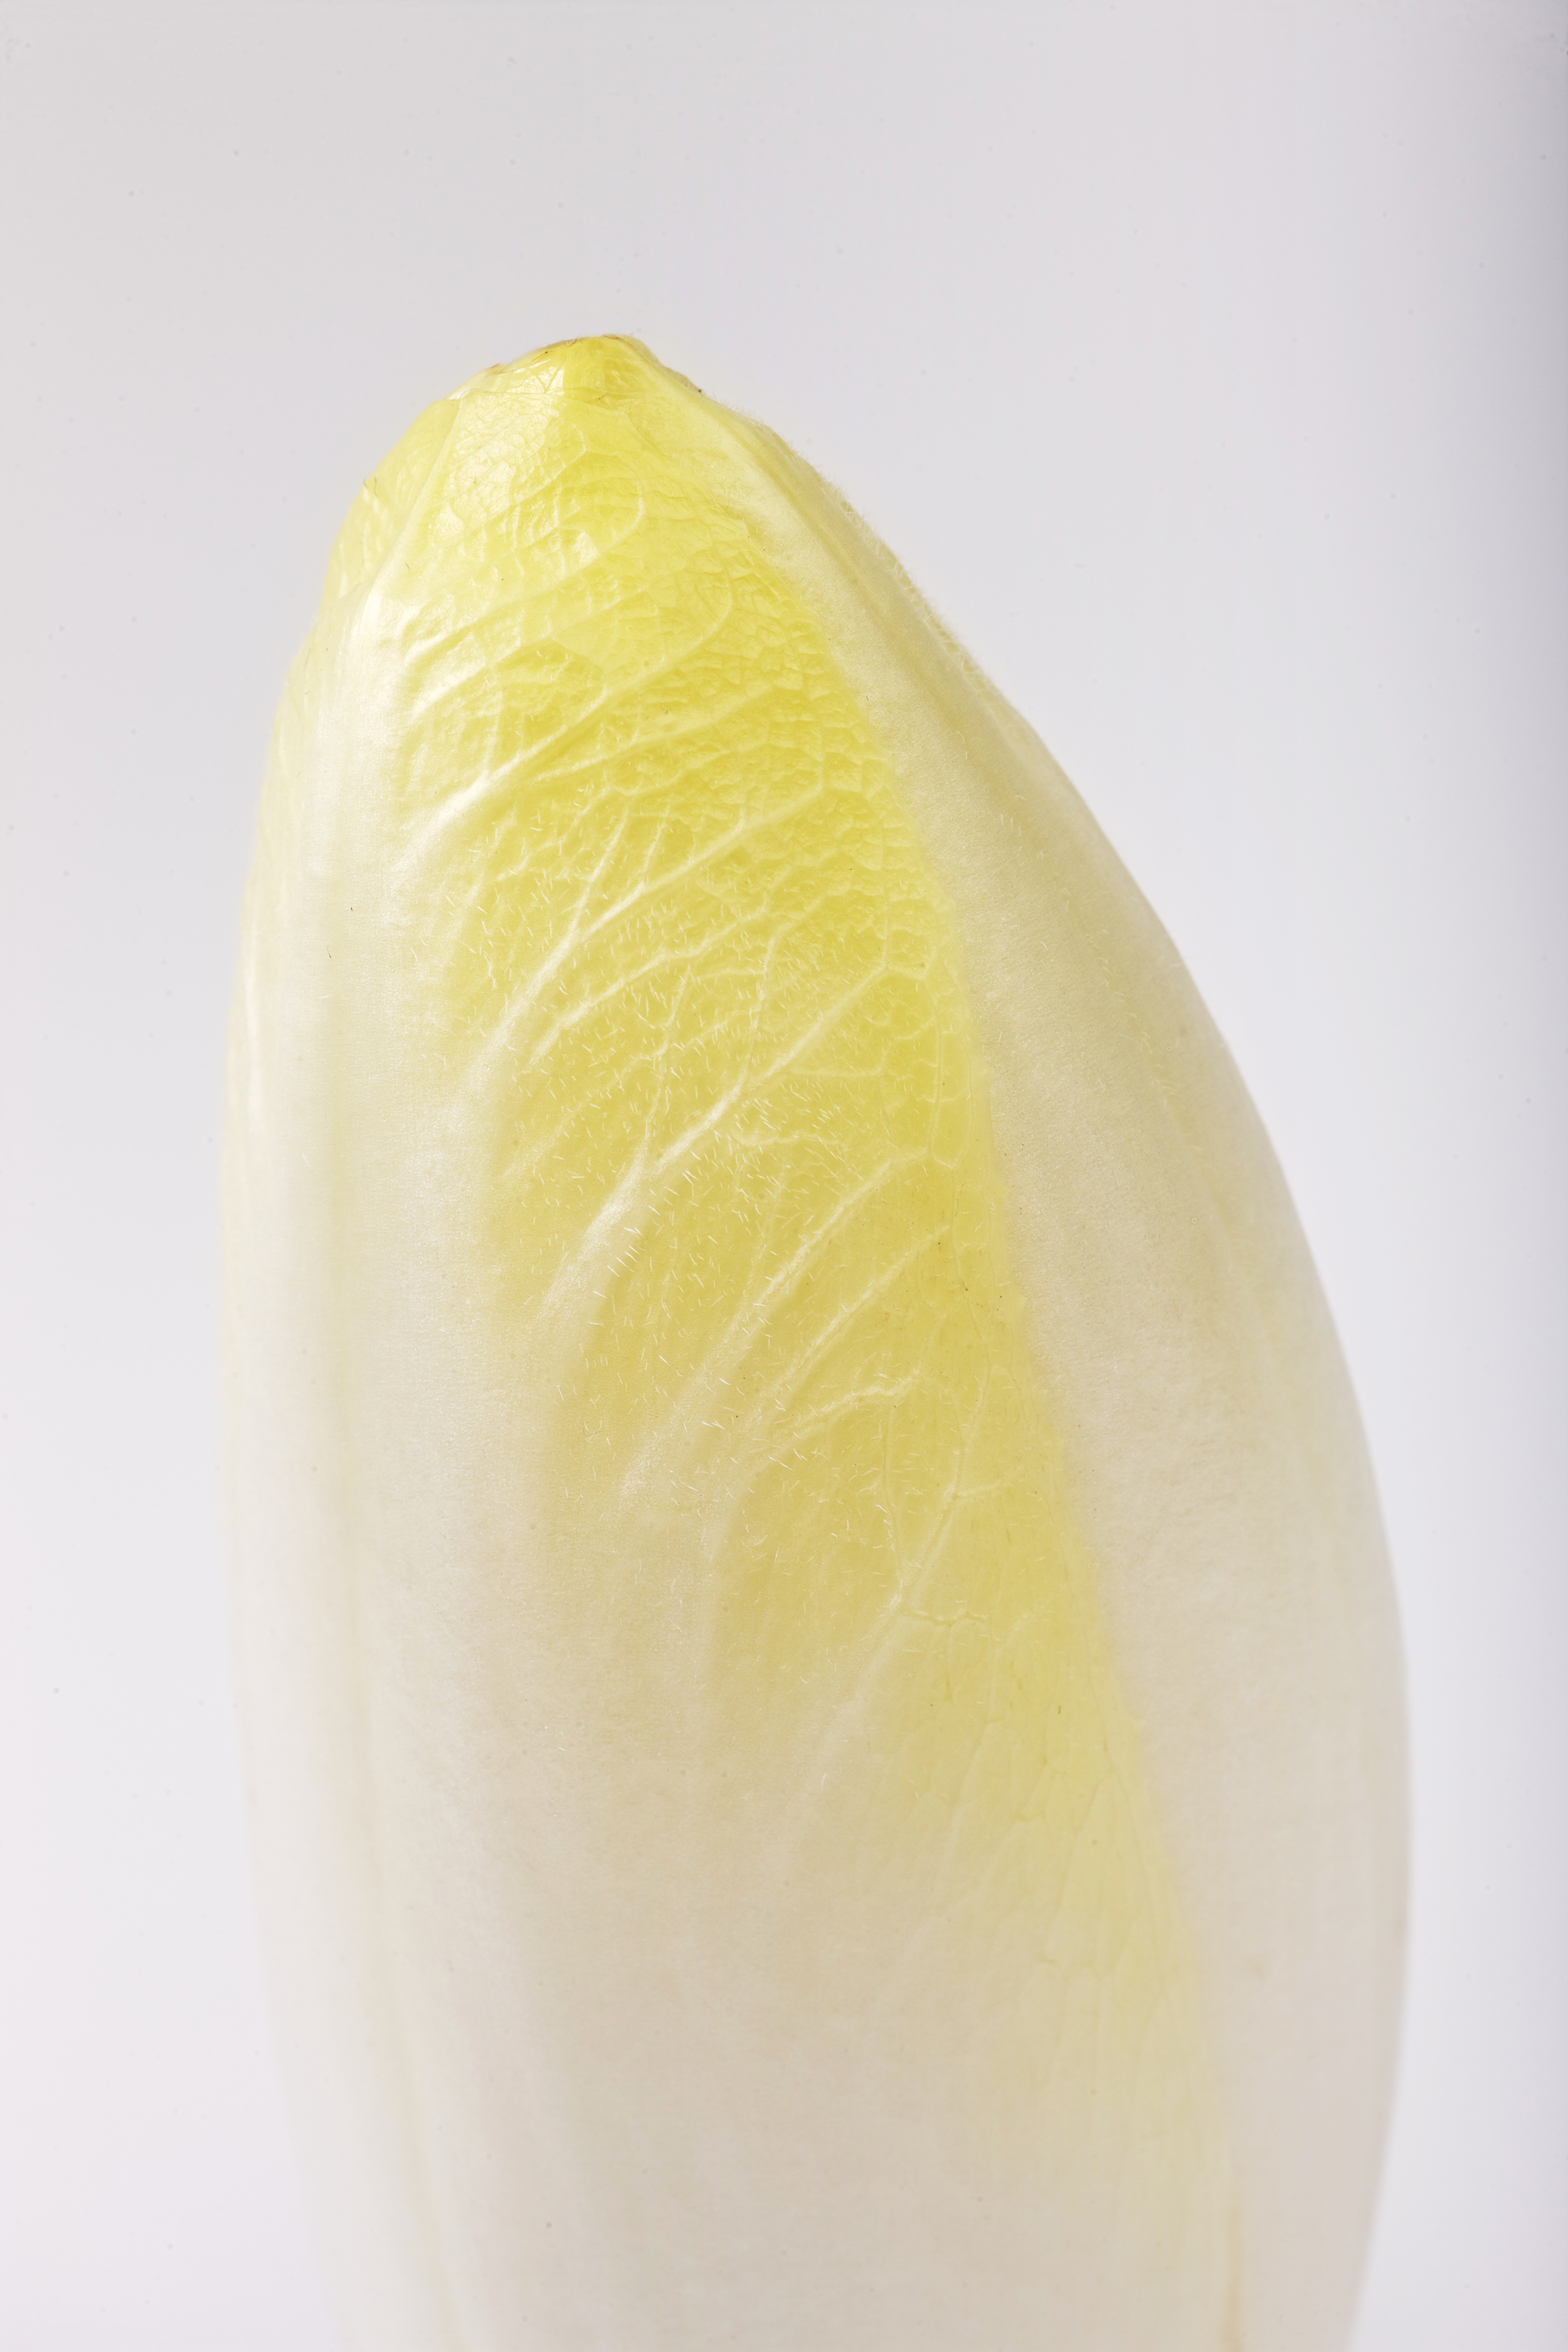 What is Endive